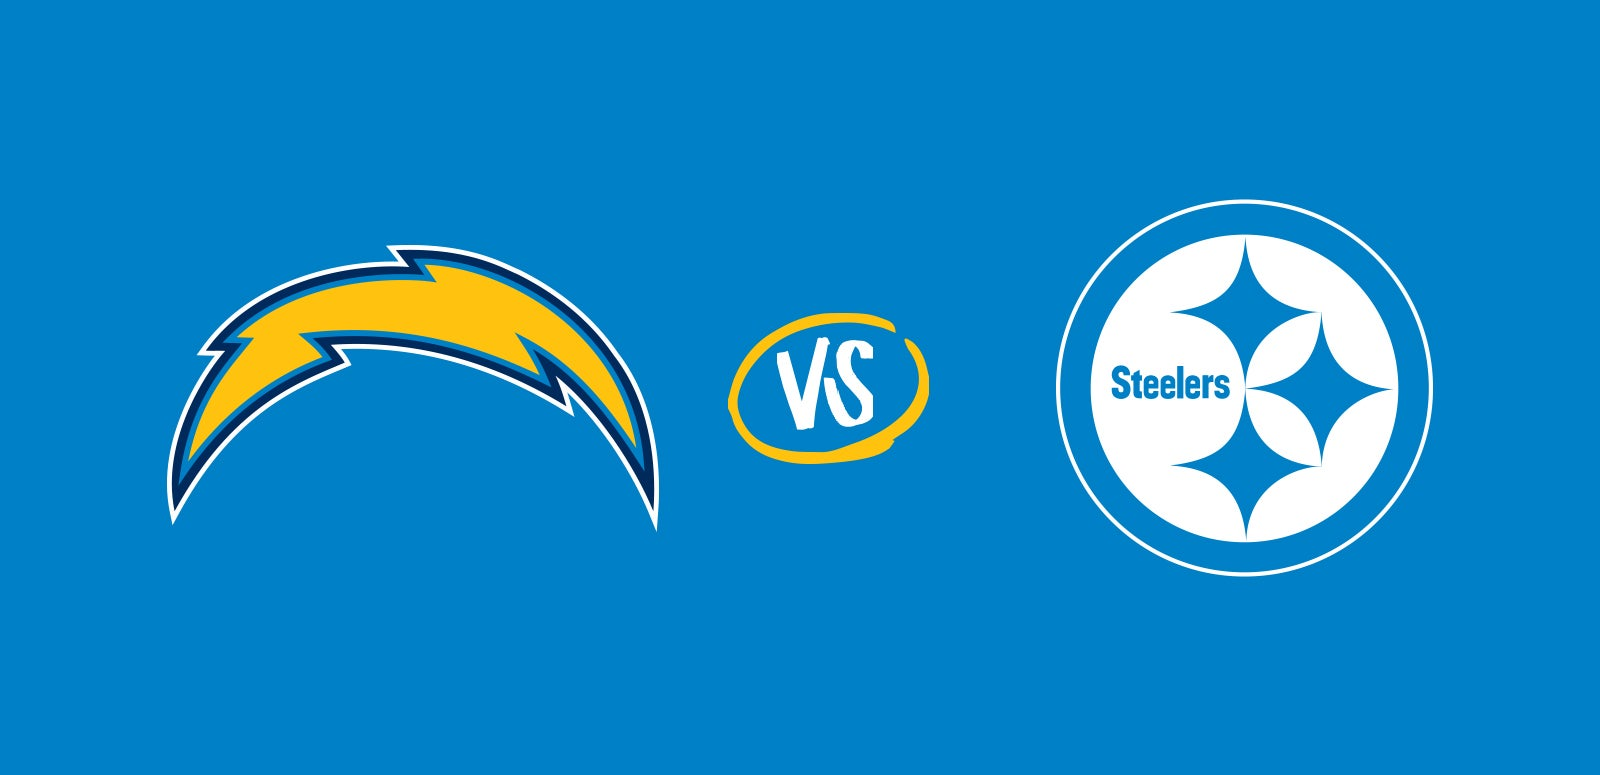 NFL: Los Angeles Chargers vs. Pittsburgh Steelers